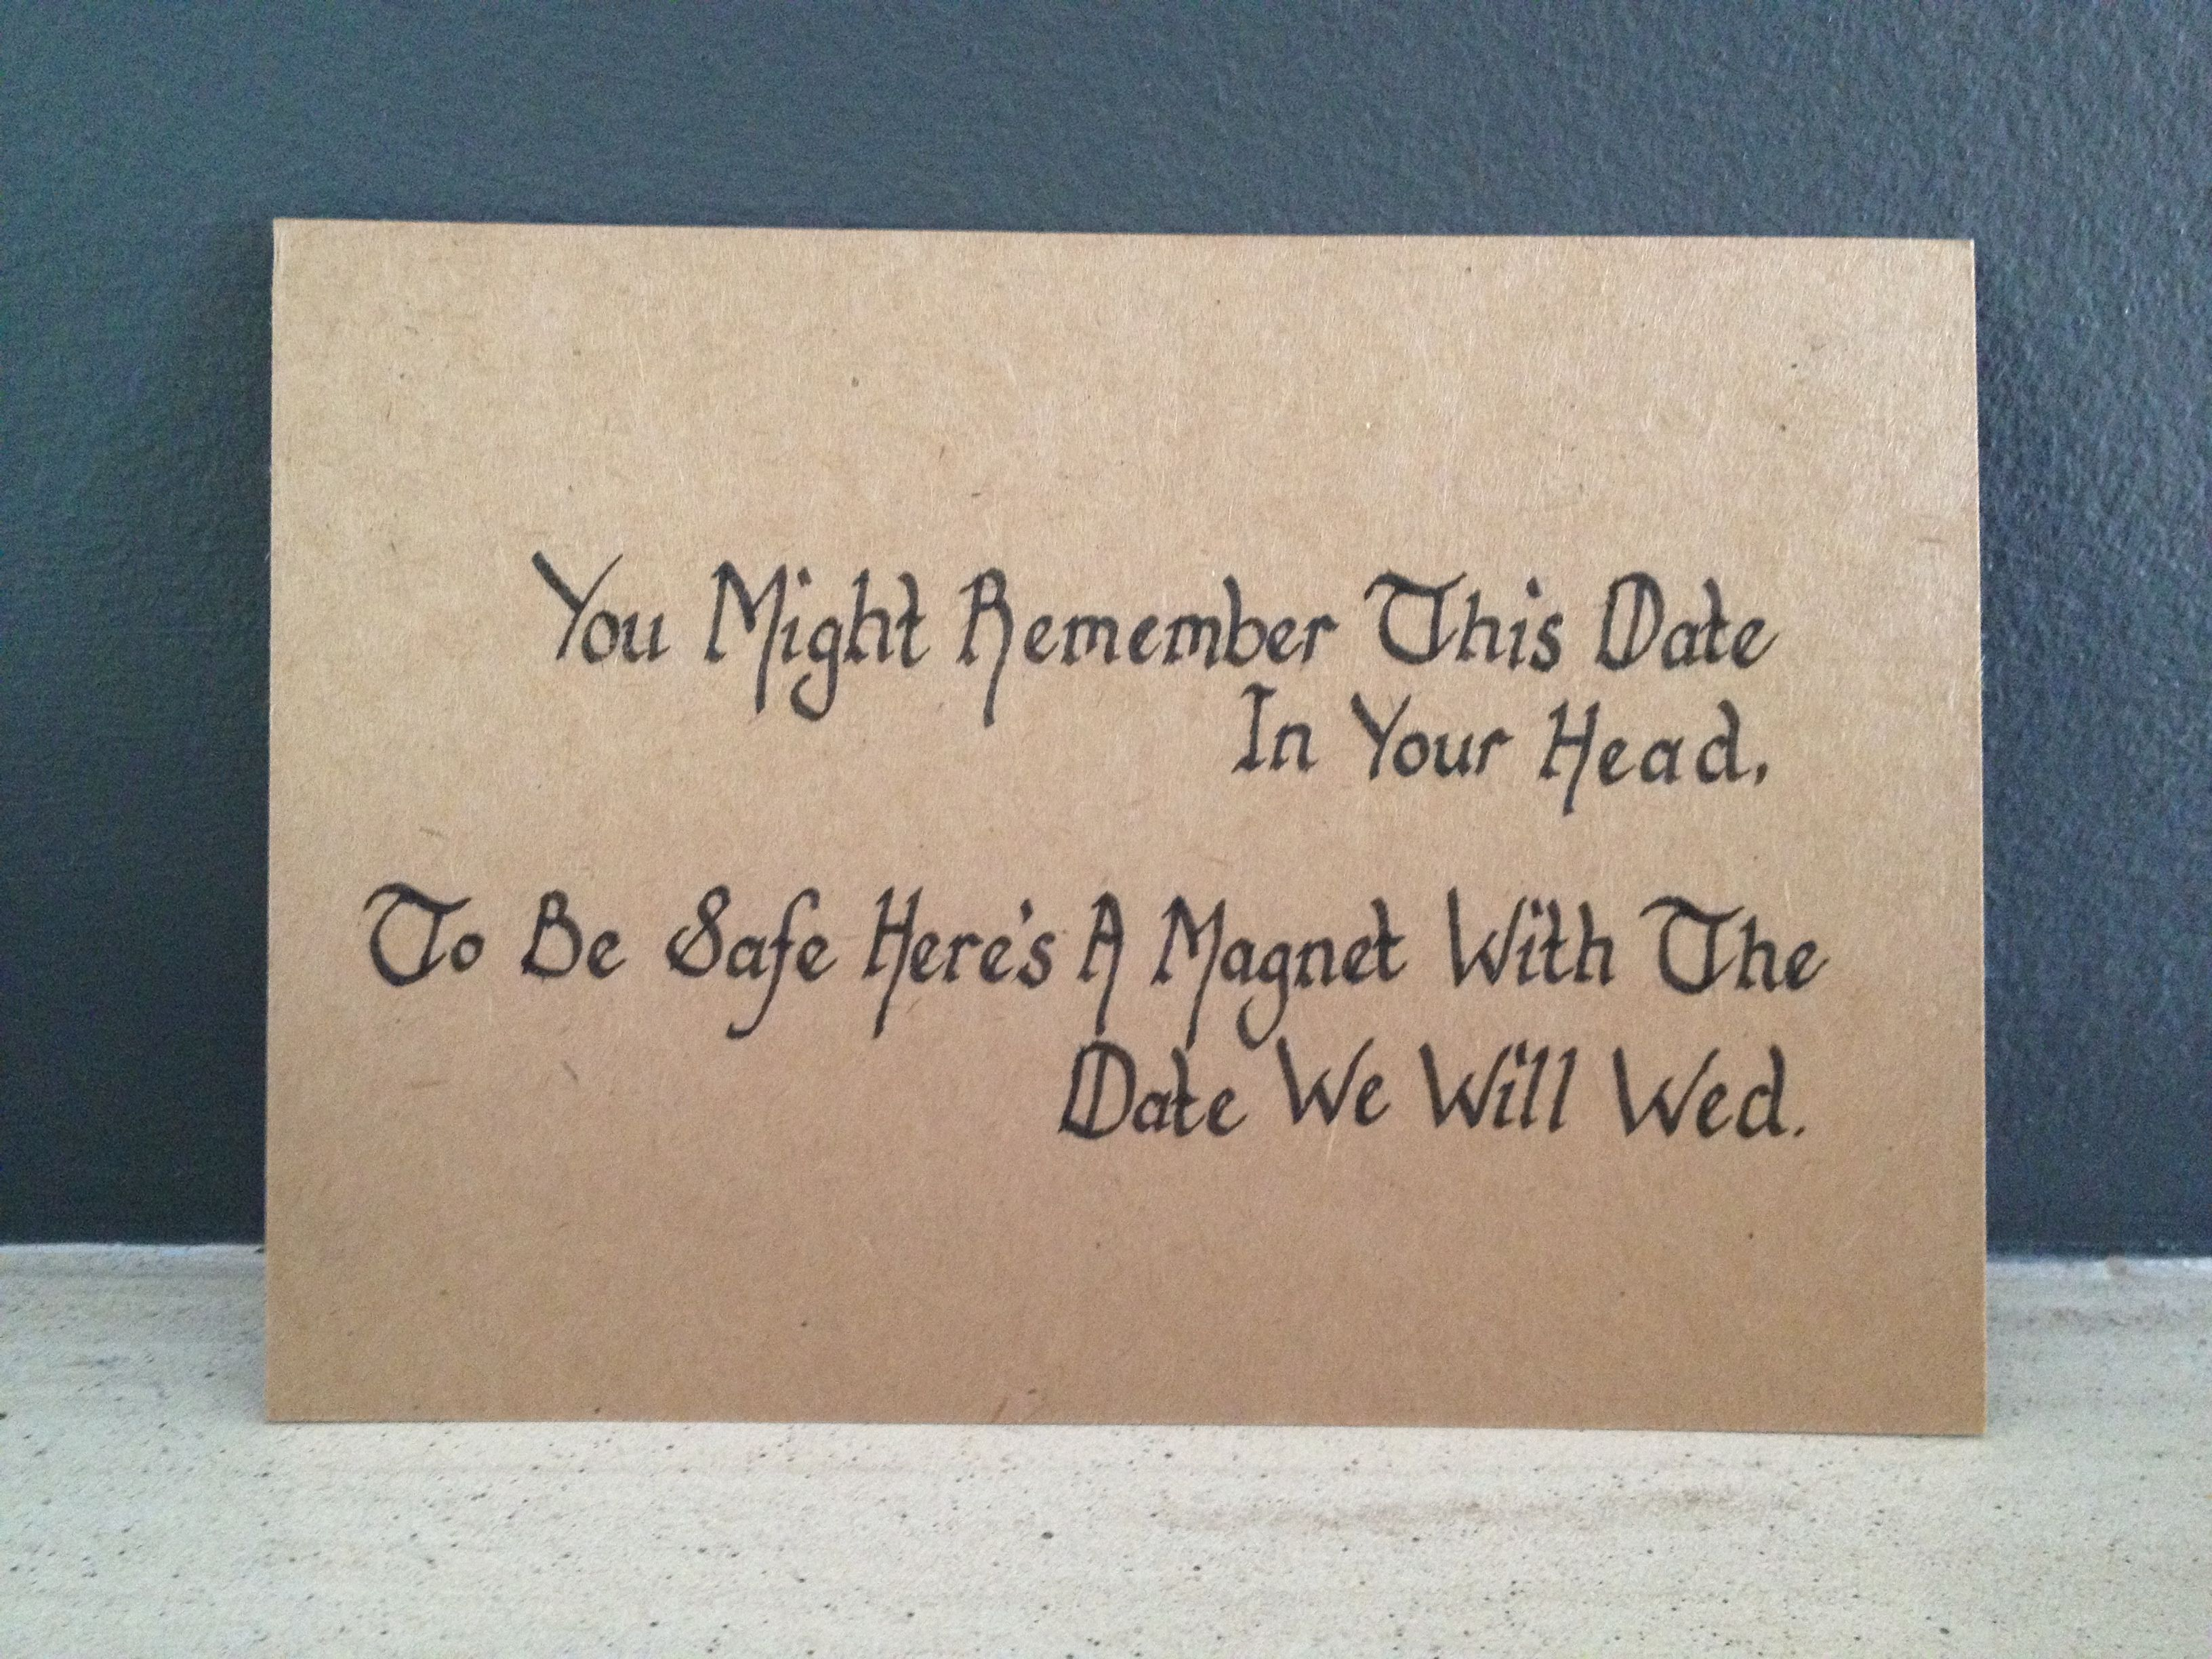 Funny Wedding Invite Poems: Poem To Go With Our Save The Date Magnet